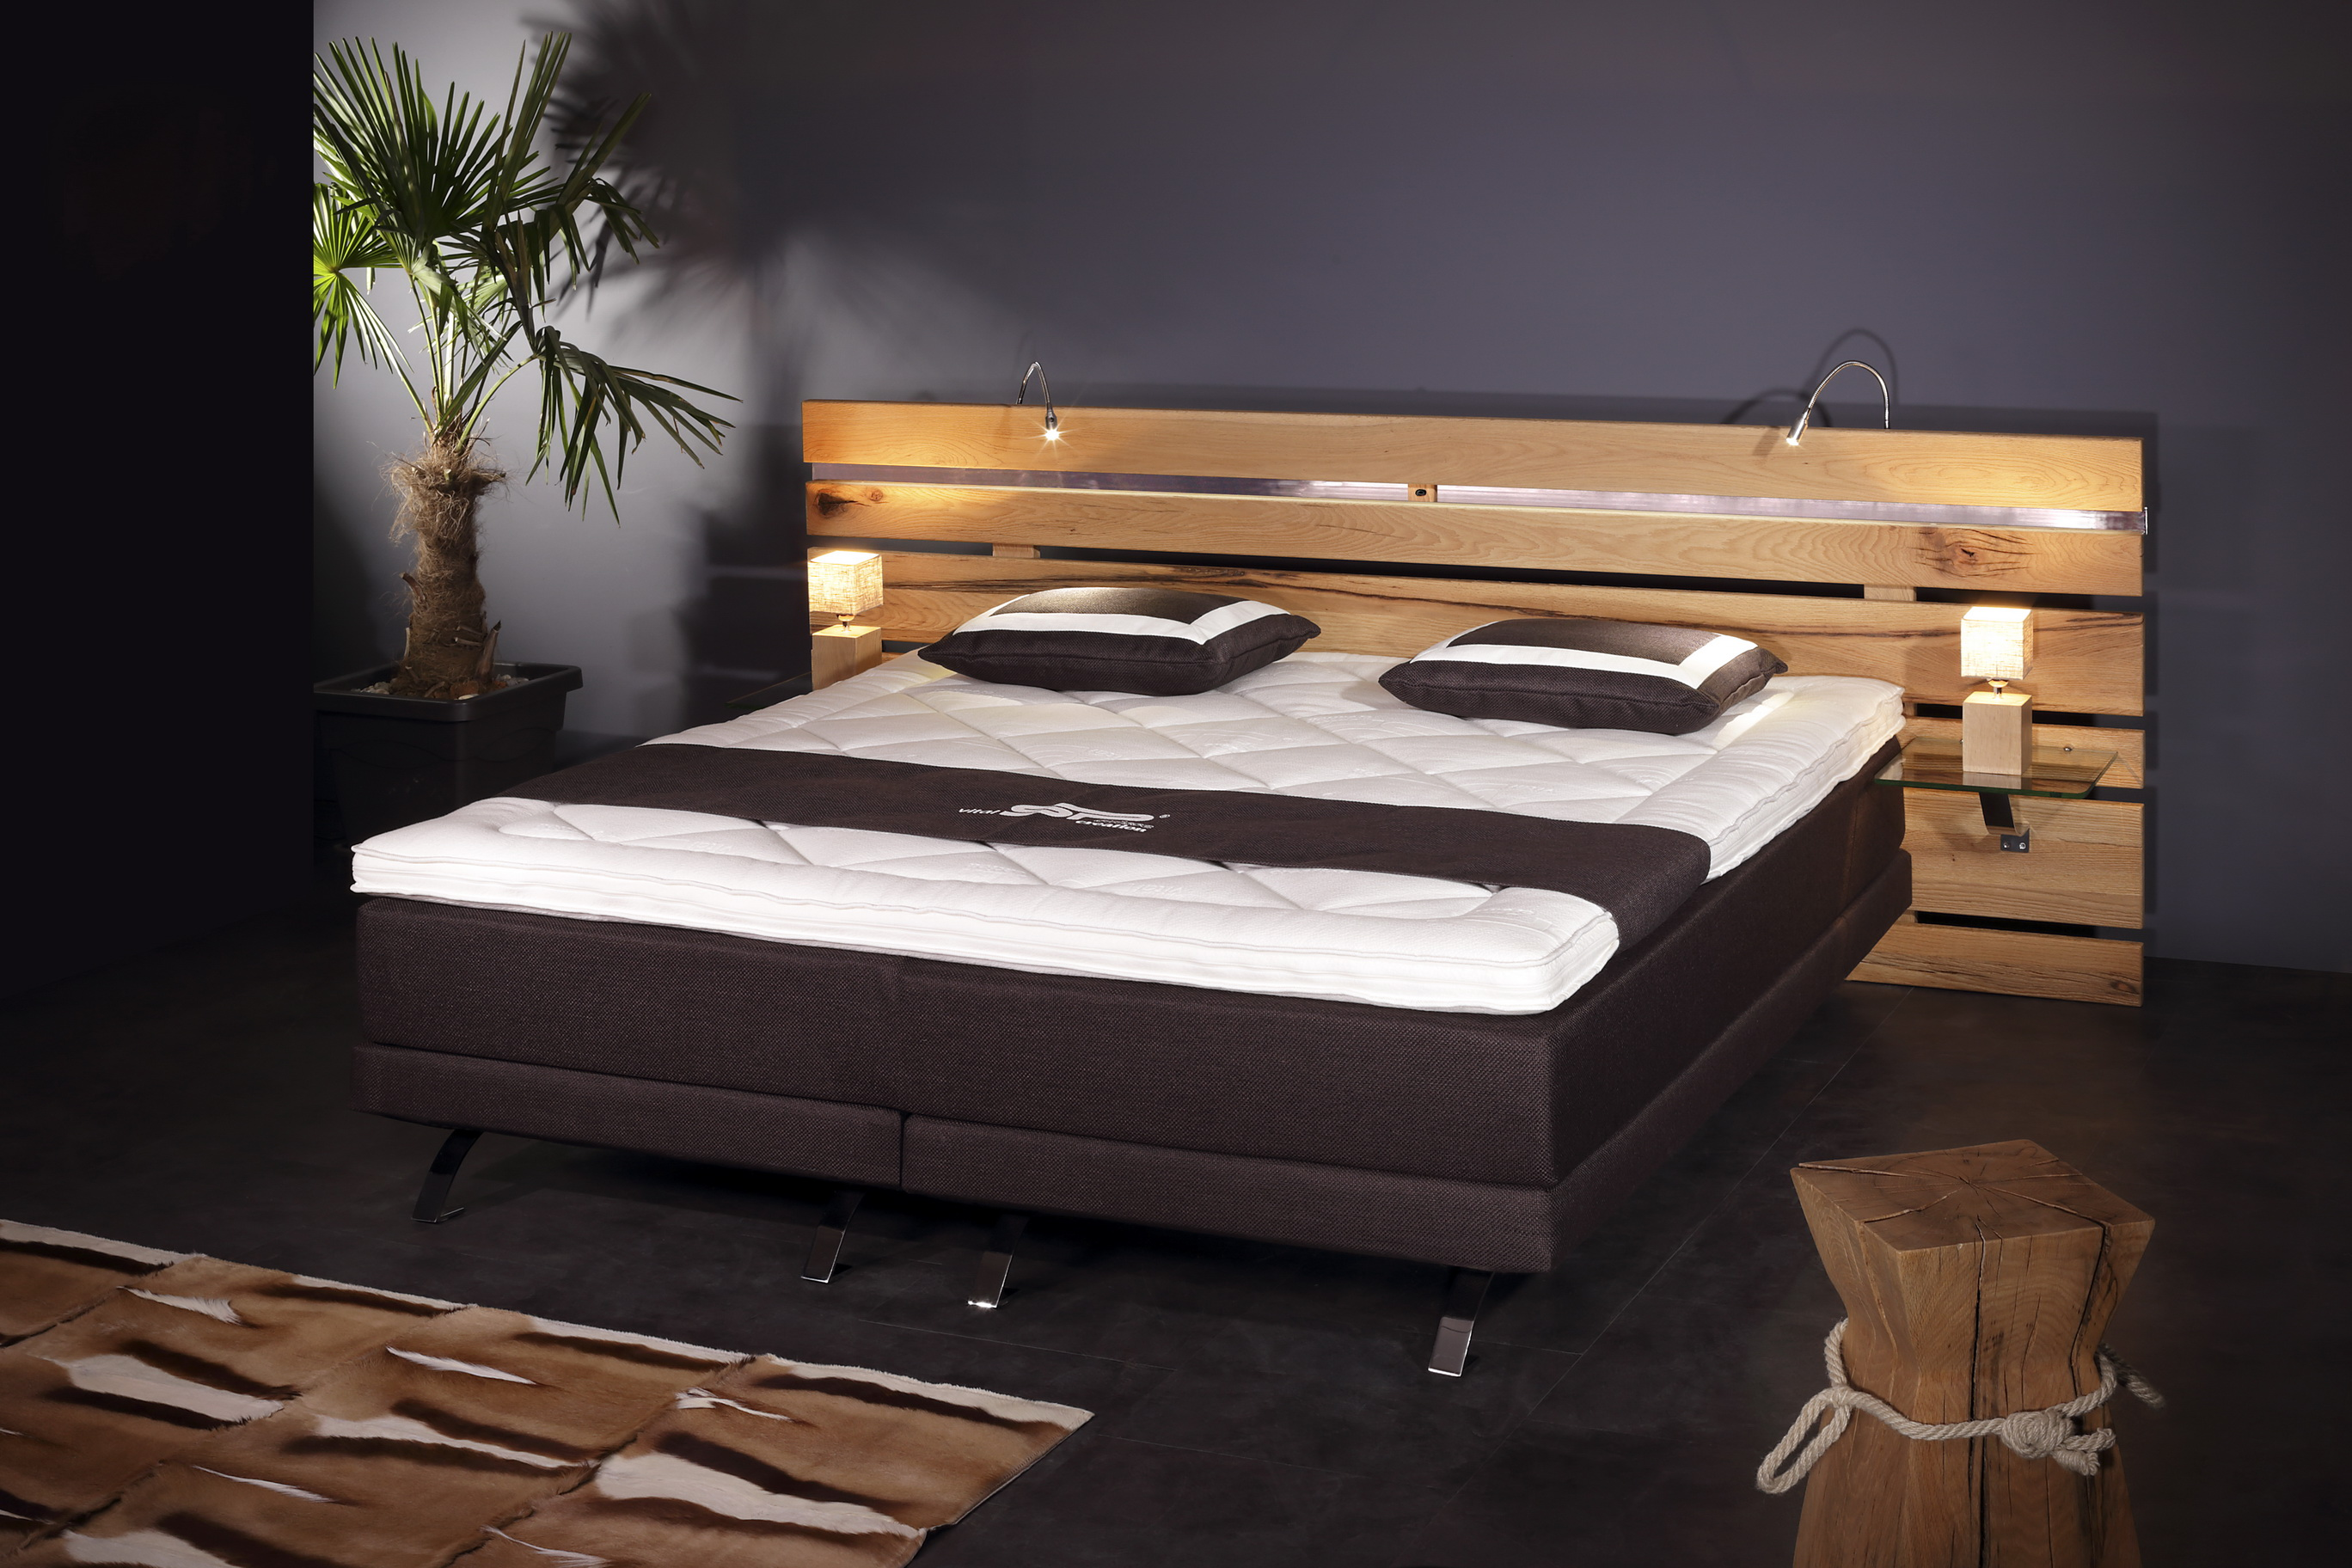 sprenger geertsema slaapcomfort. Black Bedroom Furniture Sets. Home Design Ideas